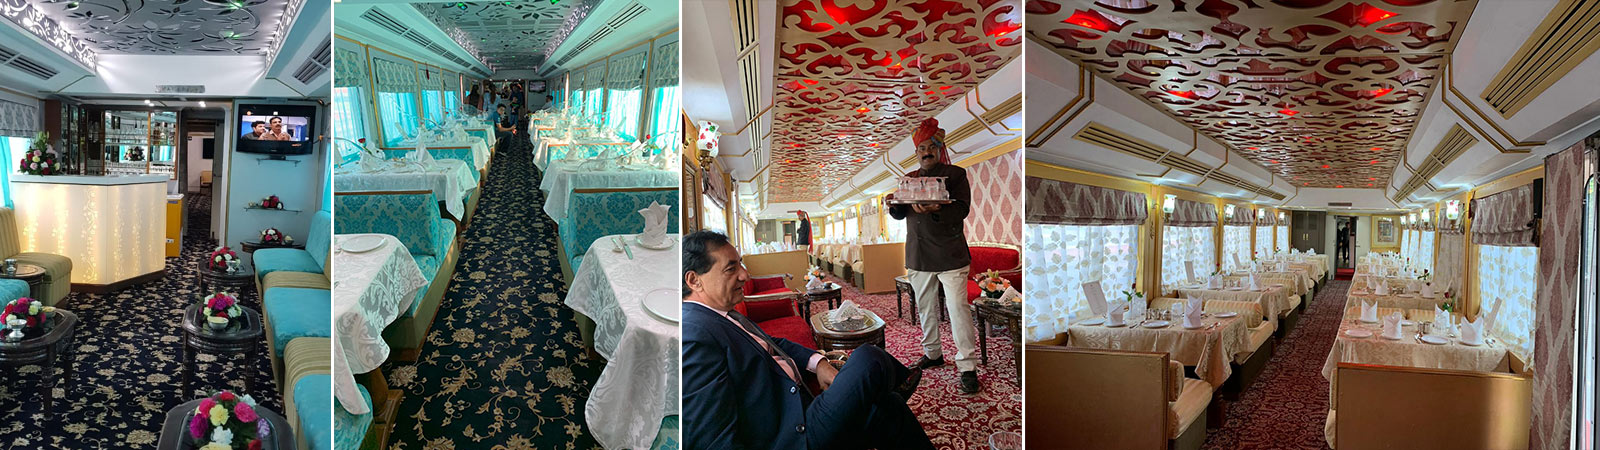 Palace on Wheels Thematic Restaurants